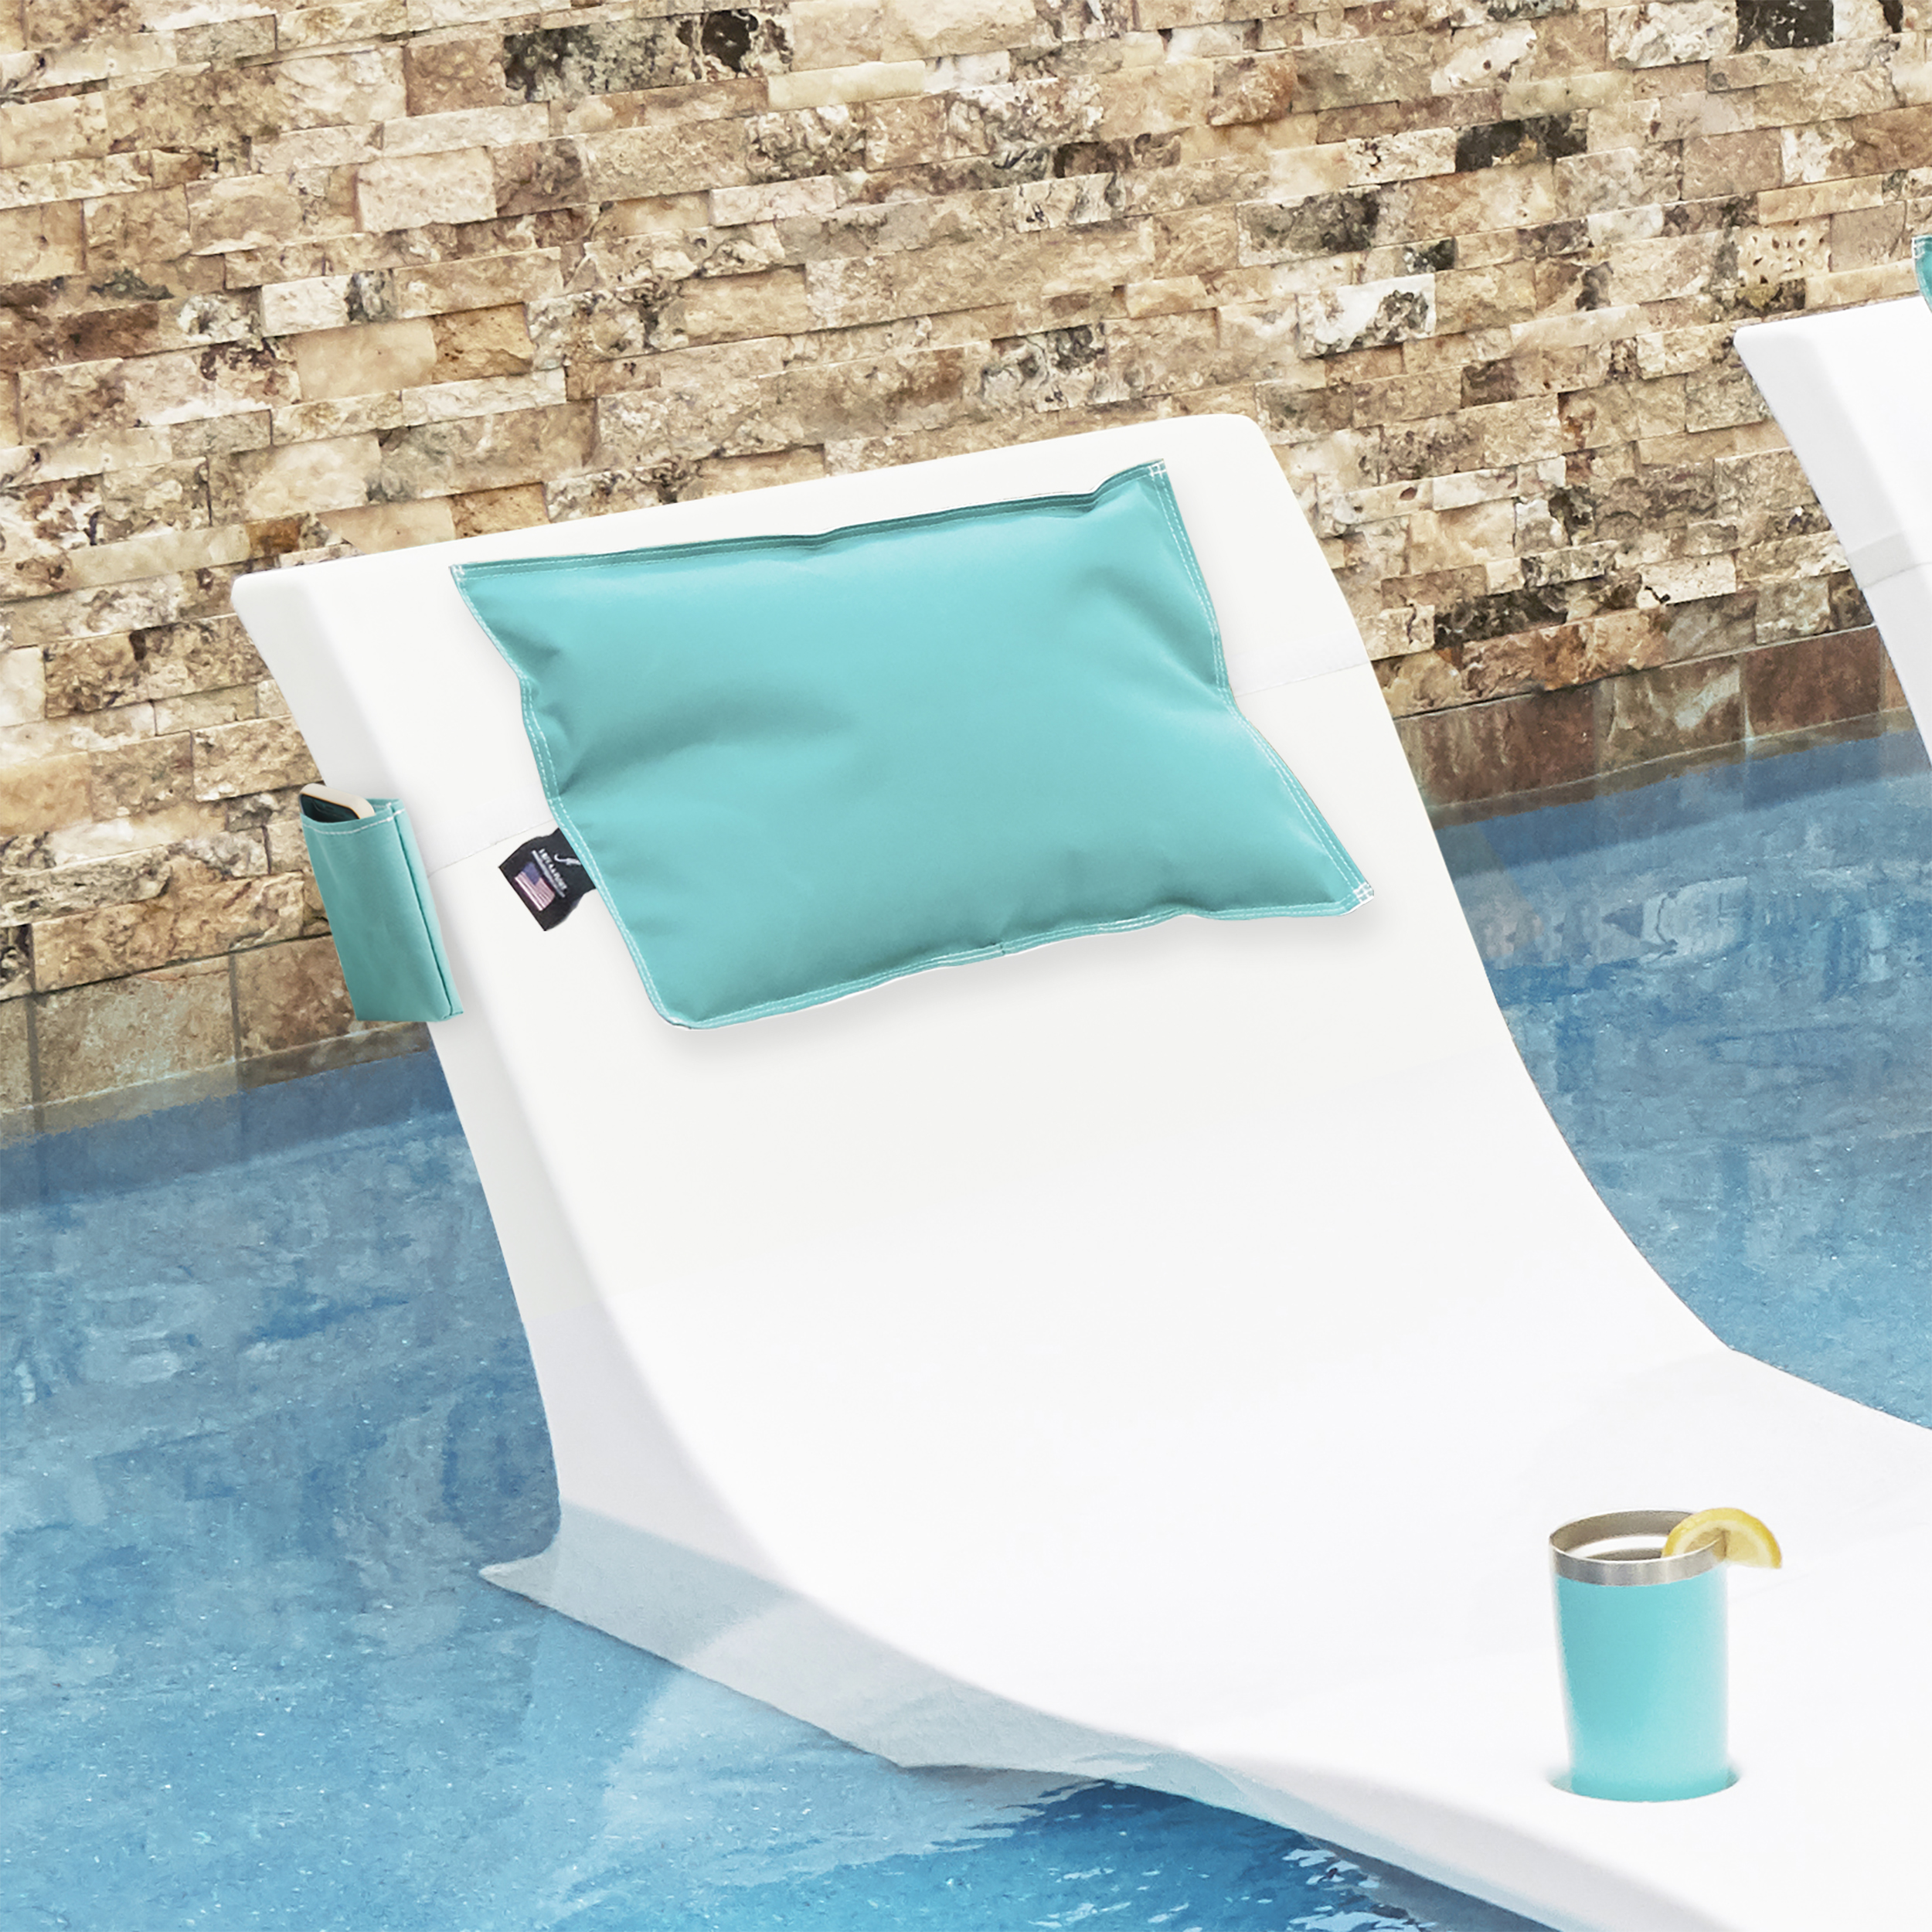 Aqua pillow on chaise